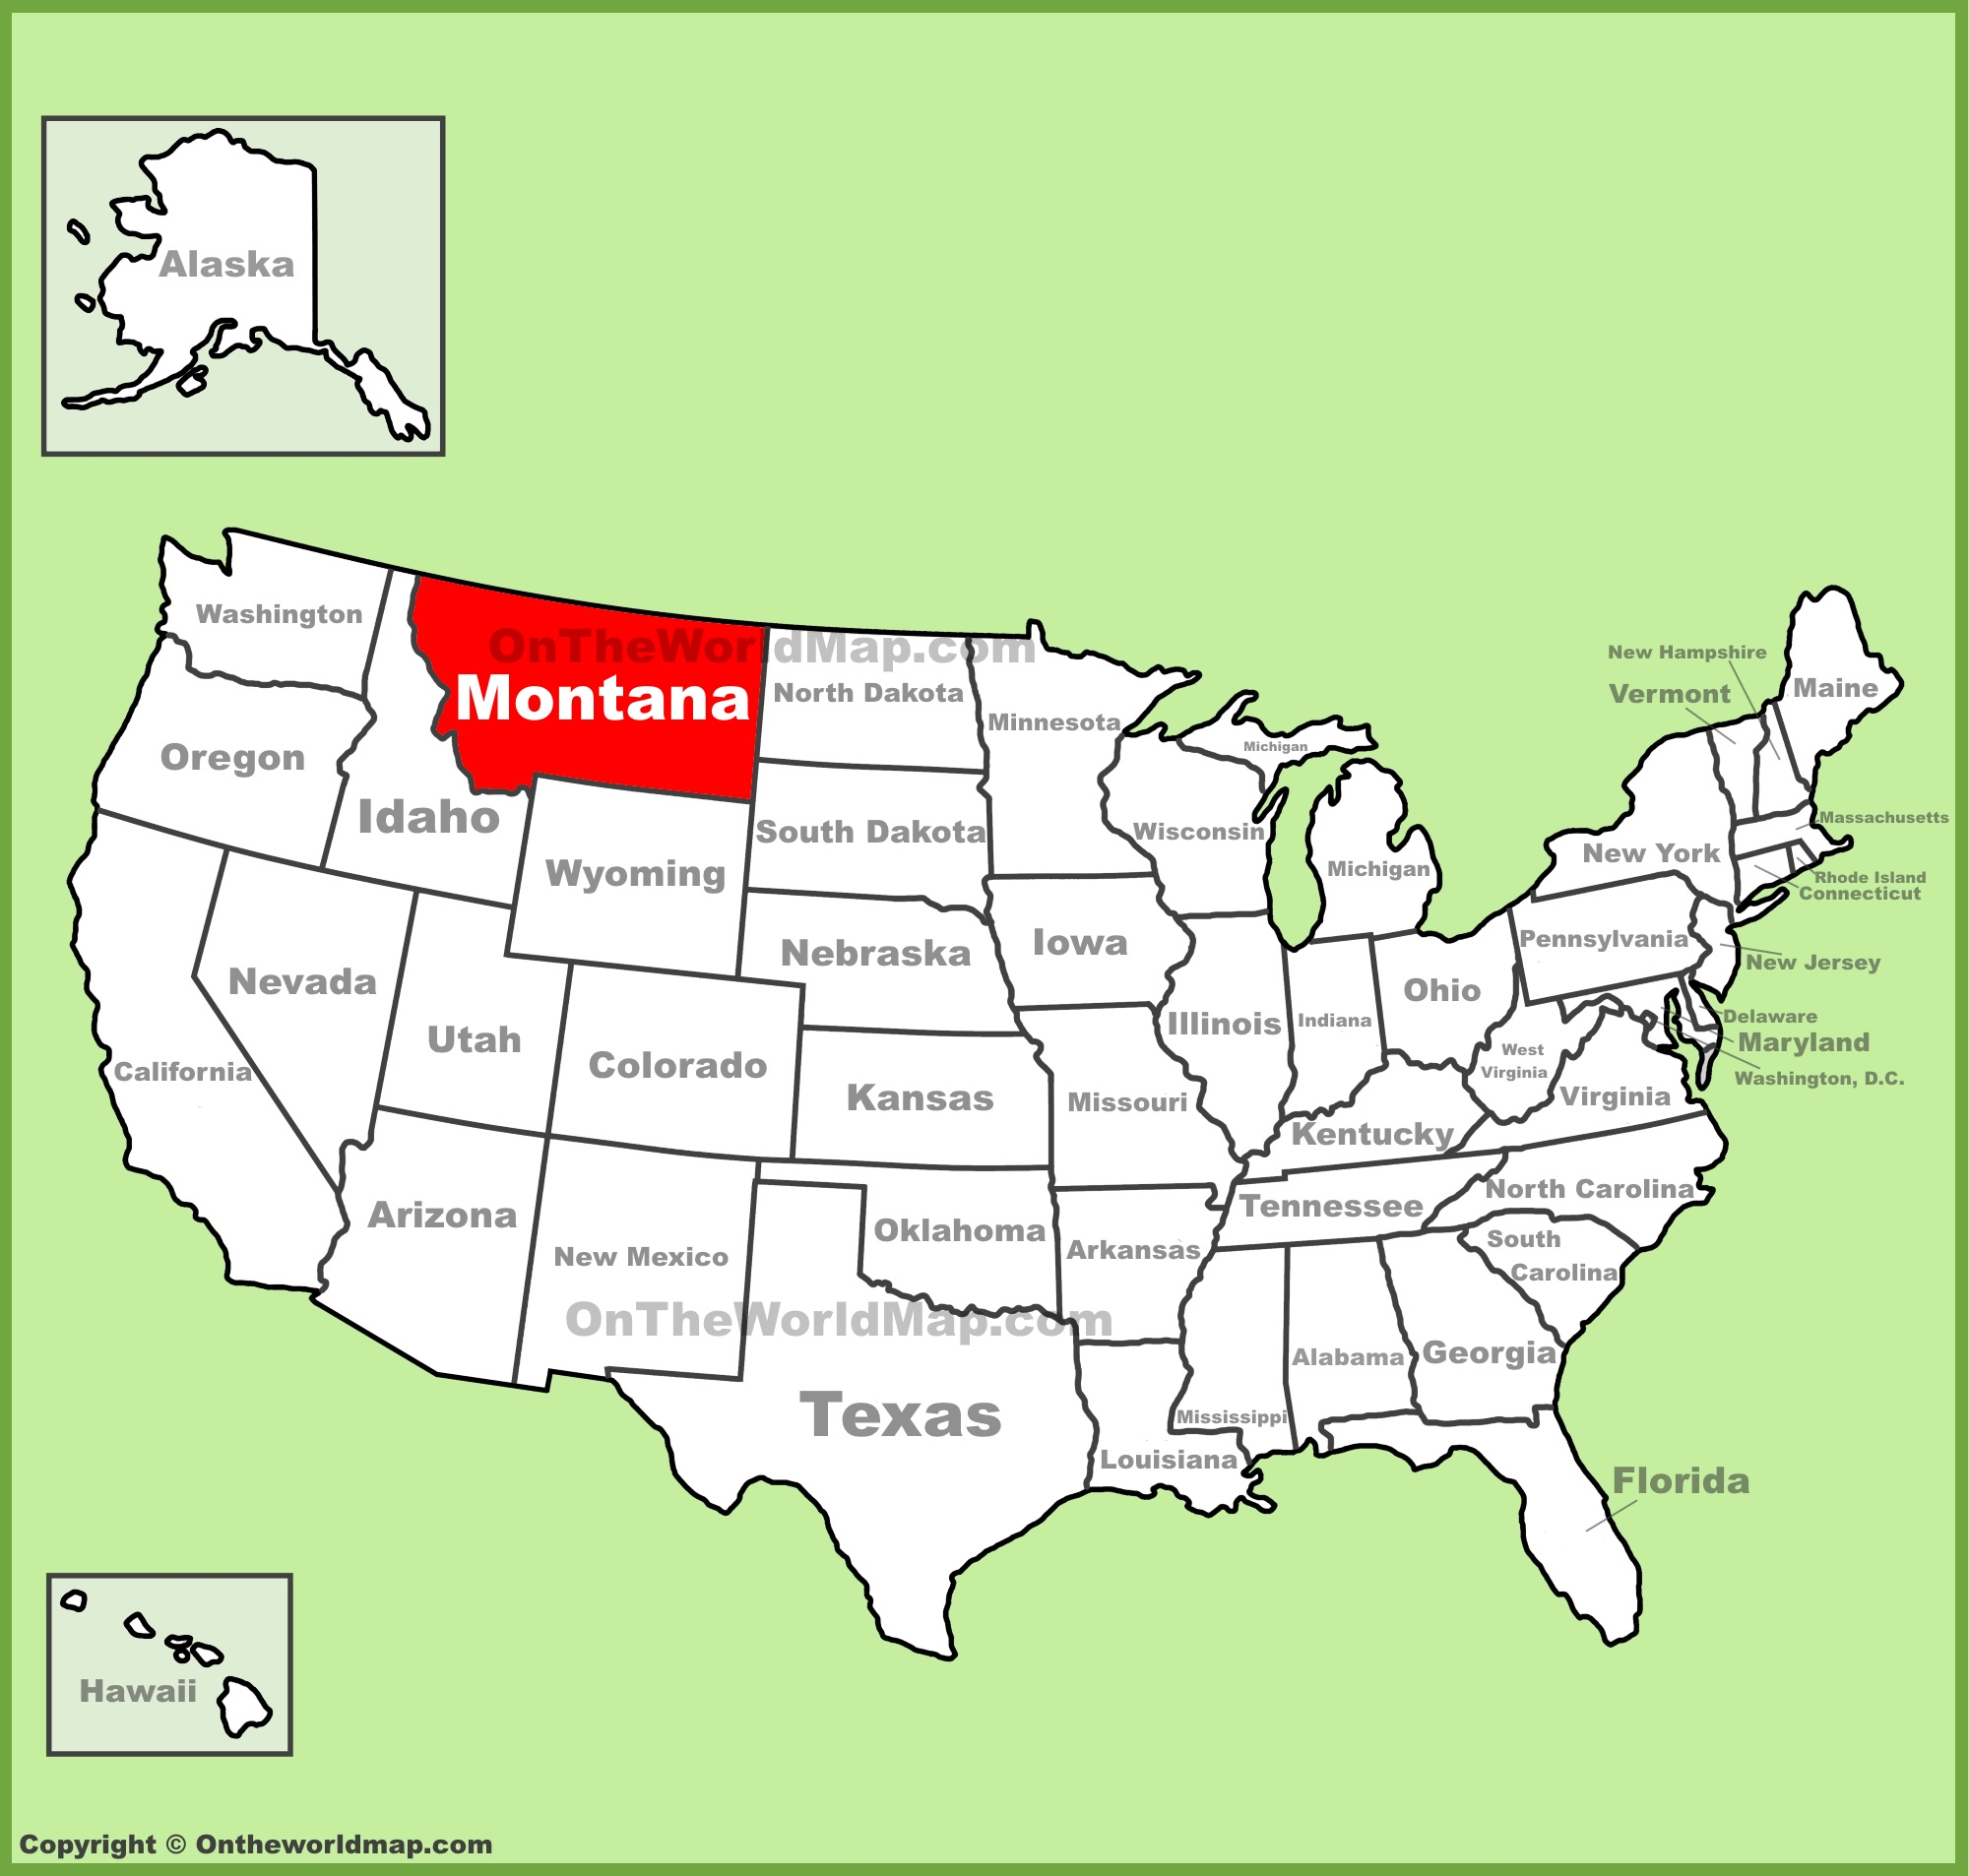 Montana State Maps USA Maps Of Montana MT - Mt map